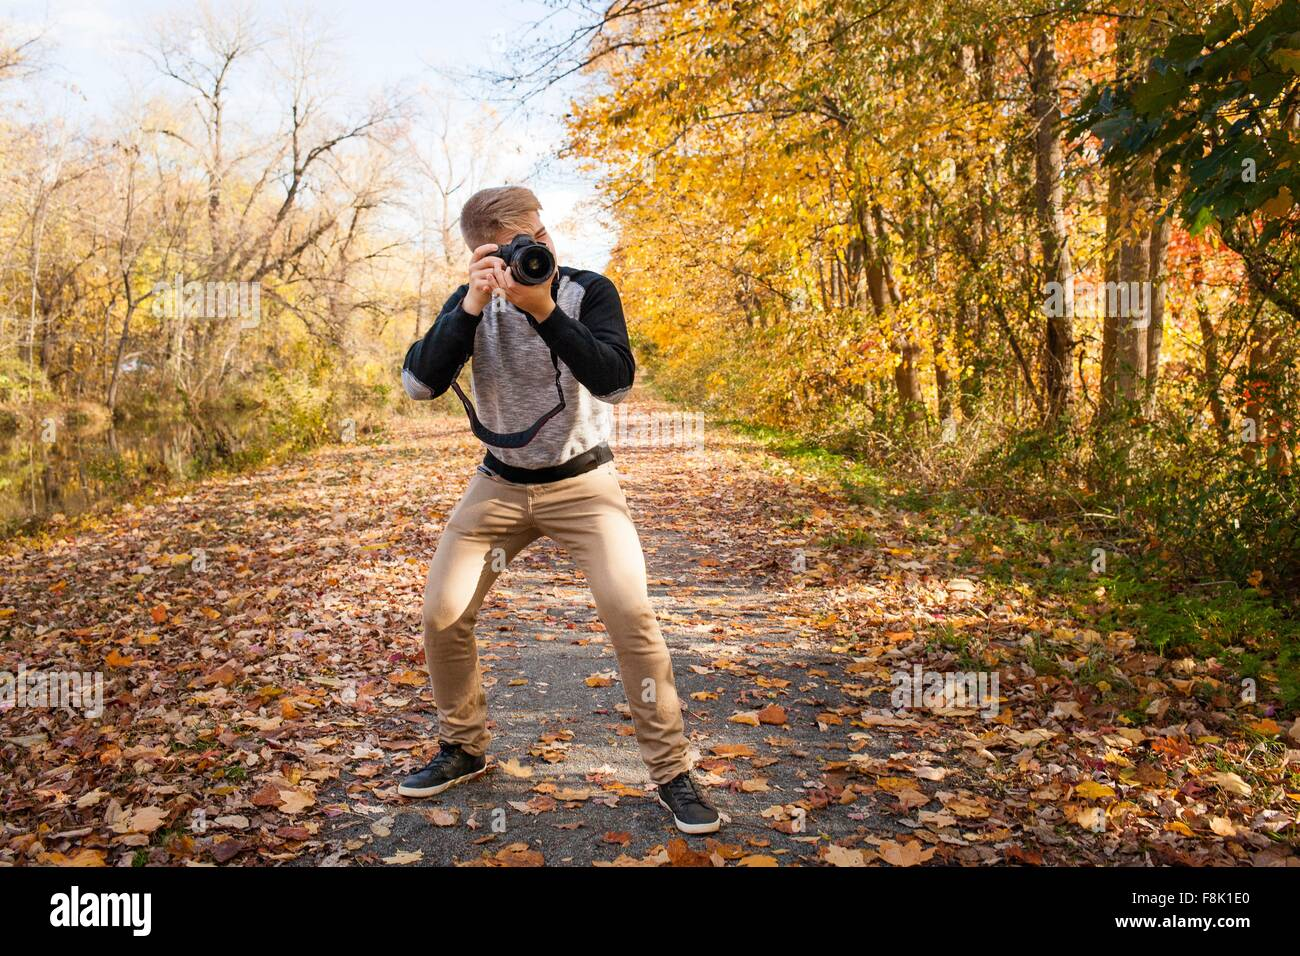 Teenage boy photographing from road autumn park forest - Stock Image